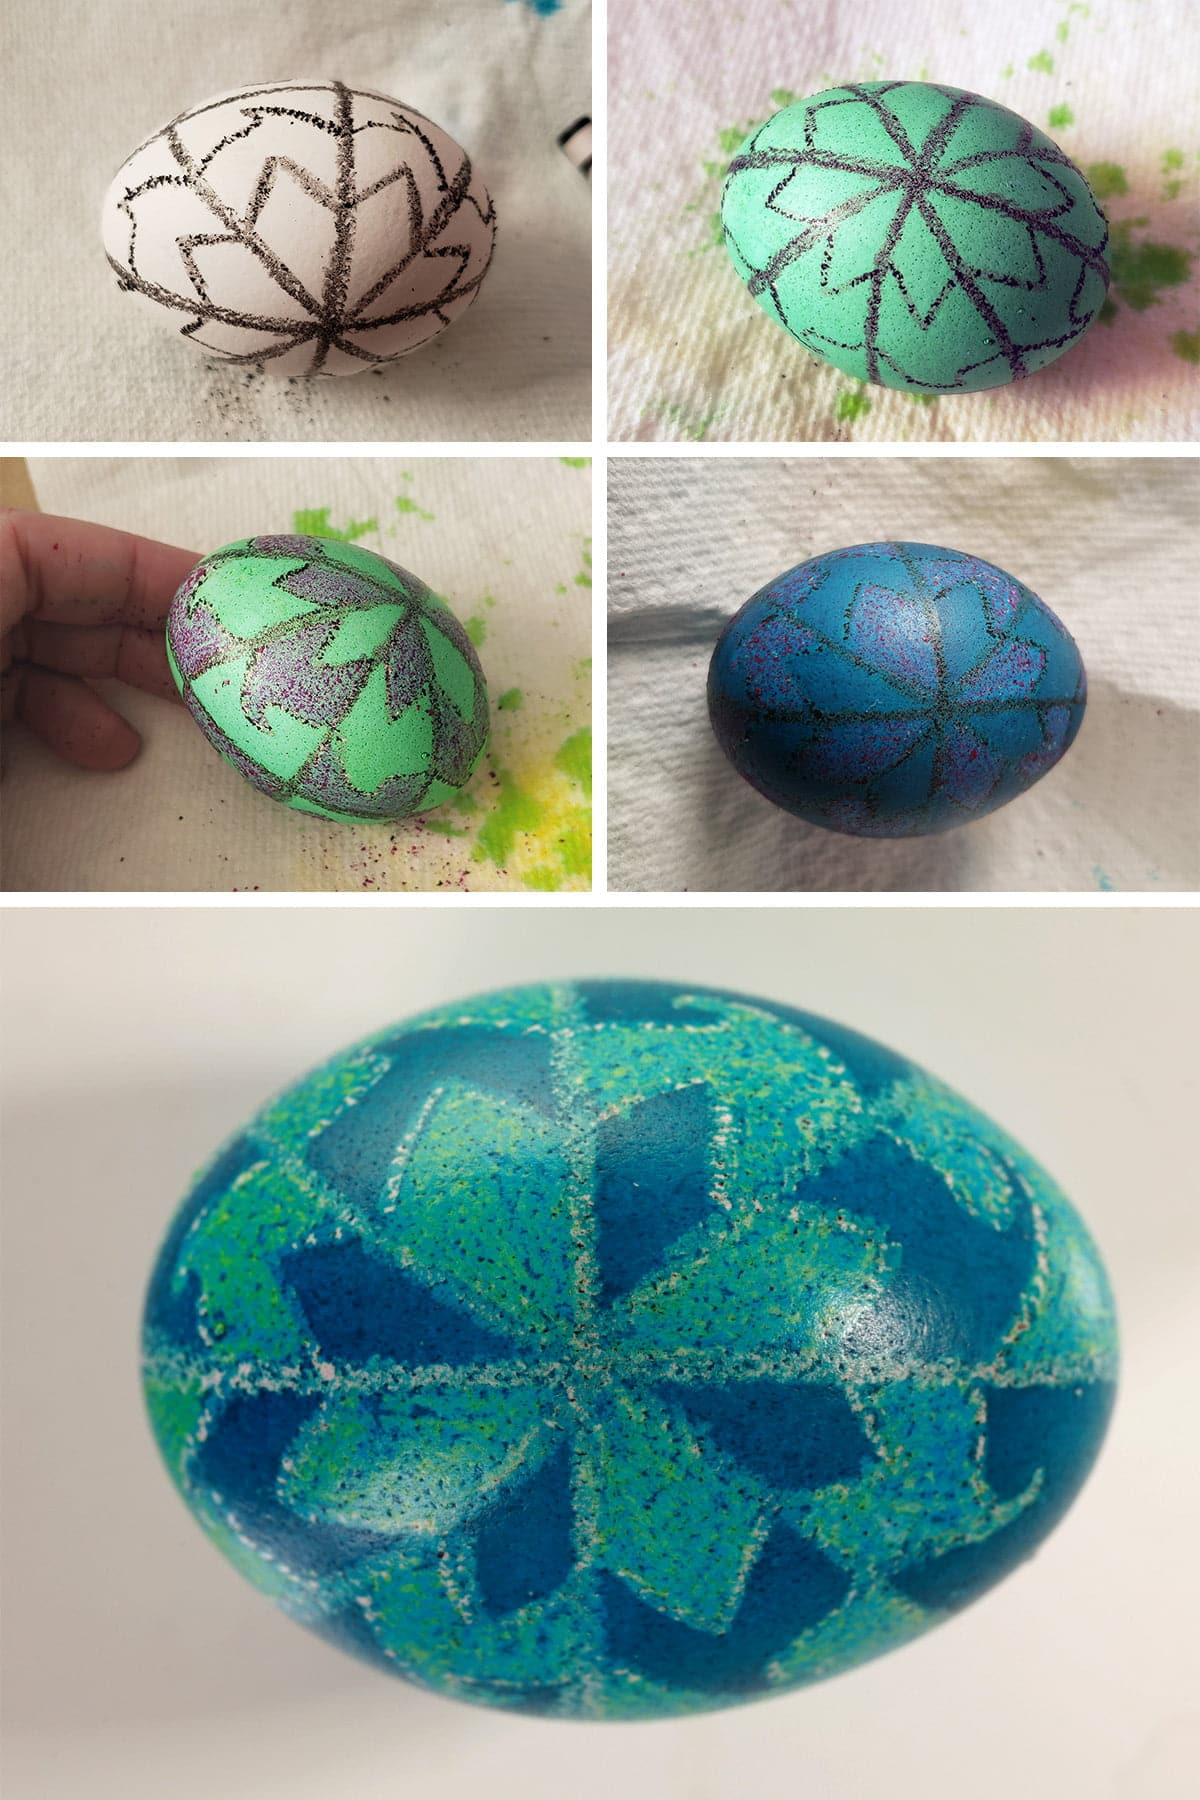 A 5 part compilation image showing a progression from a white egg with a black design drawn on it, through to a finished pysanky egg with a teal and blue geometric design covering it.